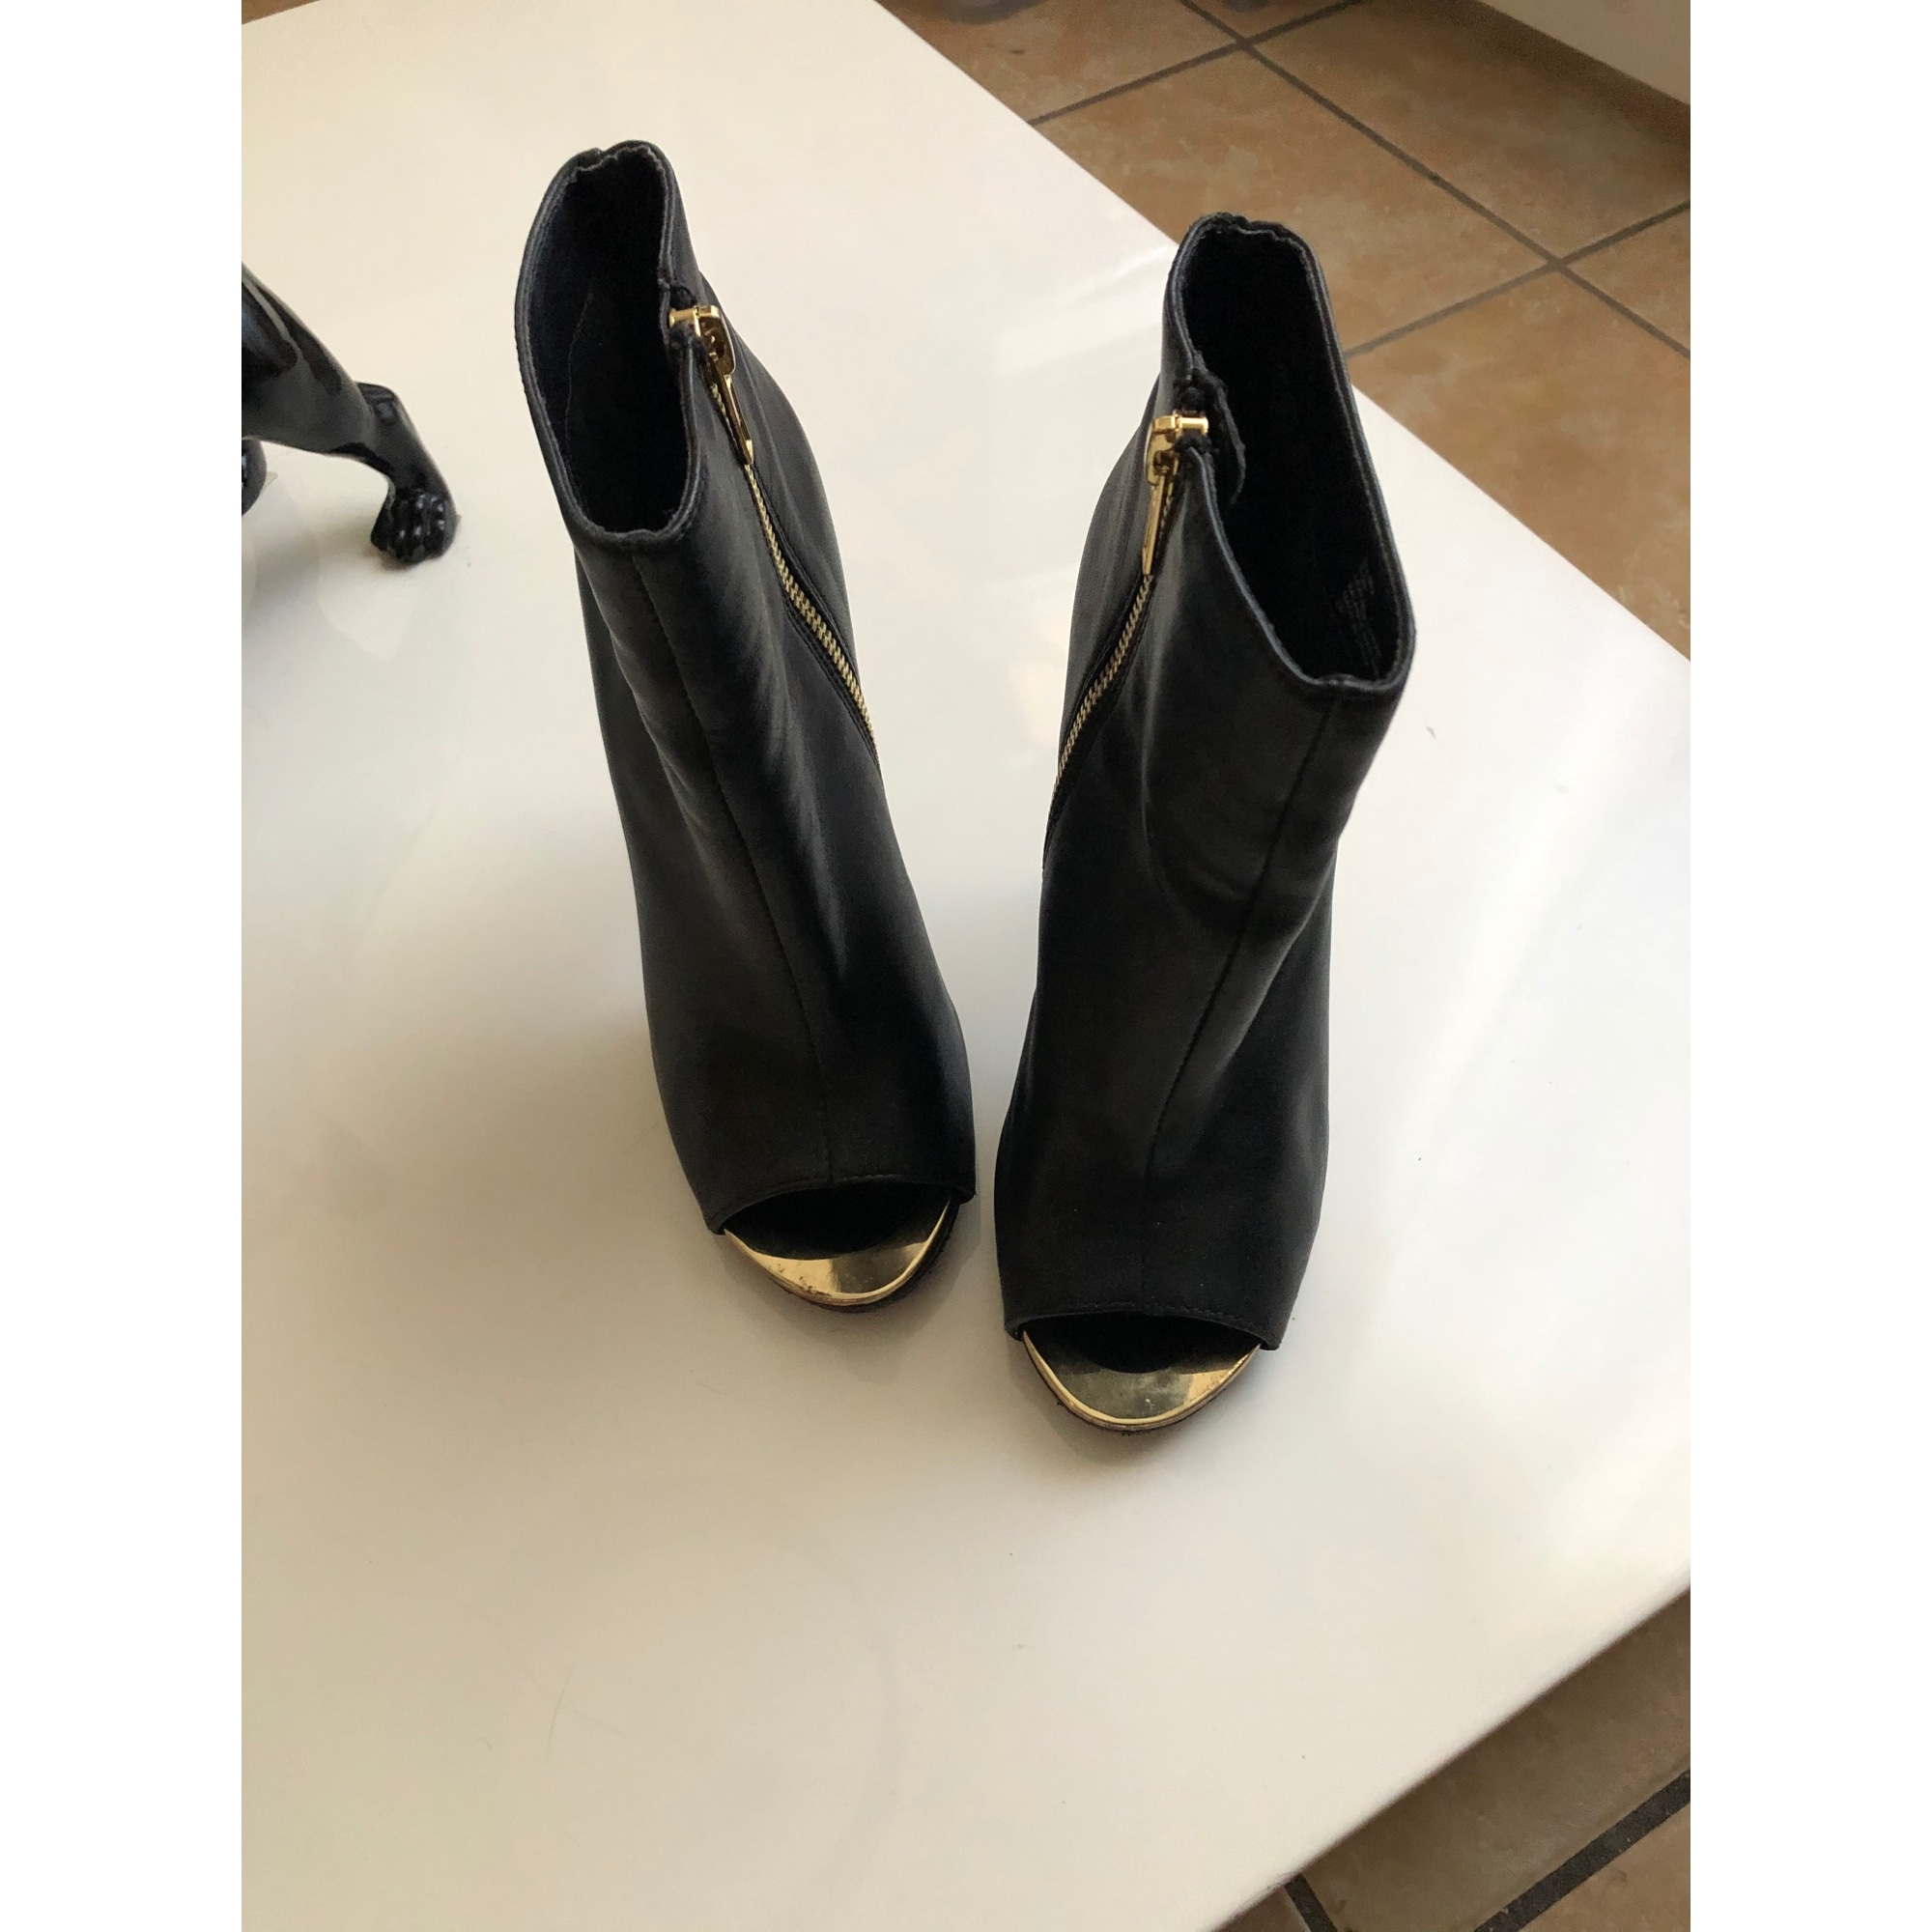 High Heel Ankle Boots STEVE MADDEN Black